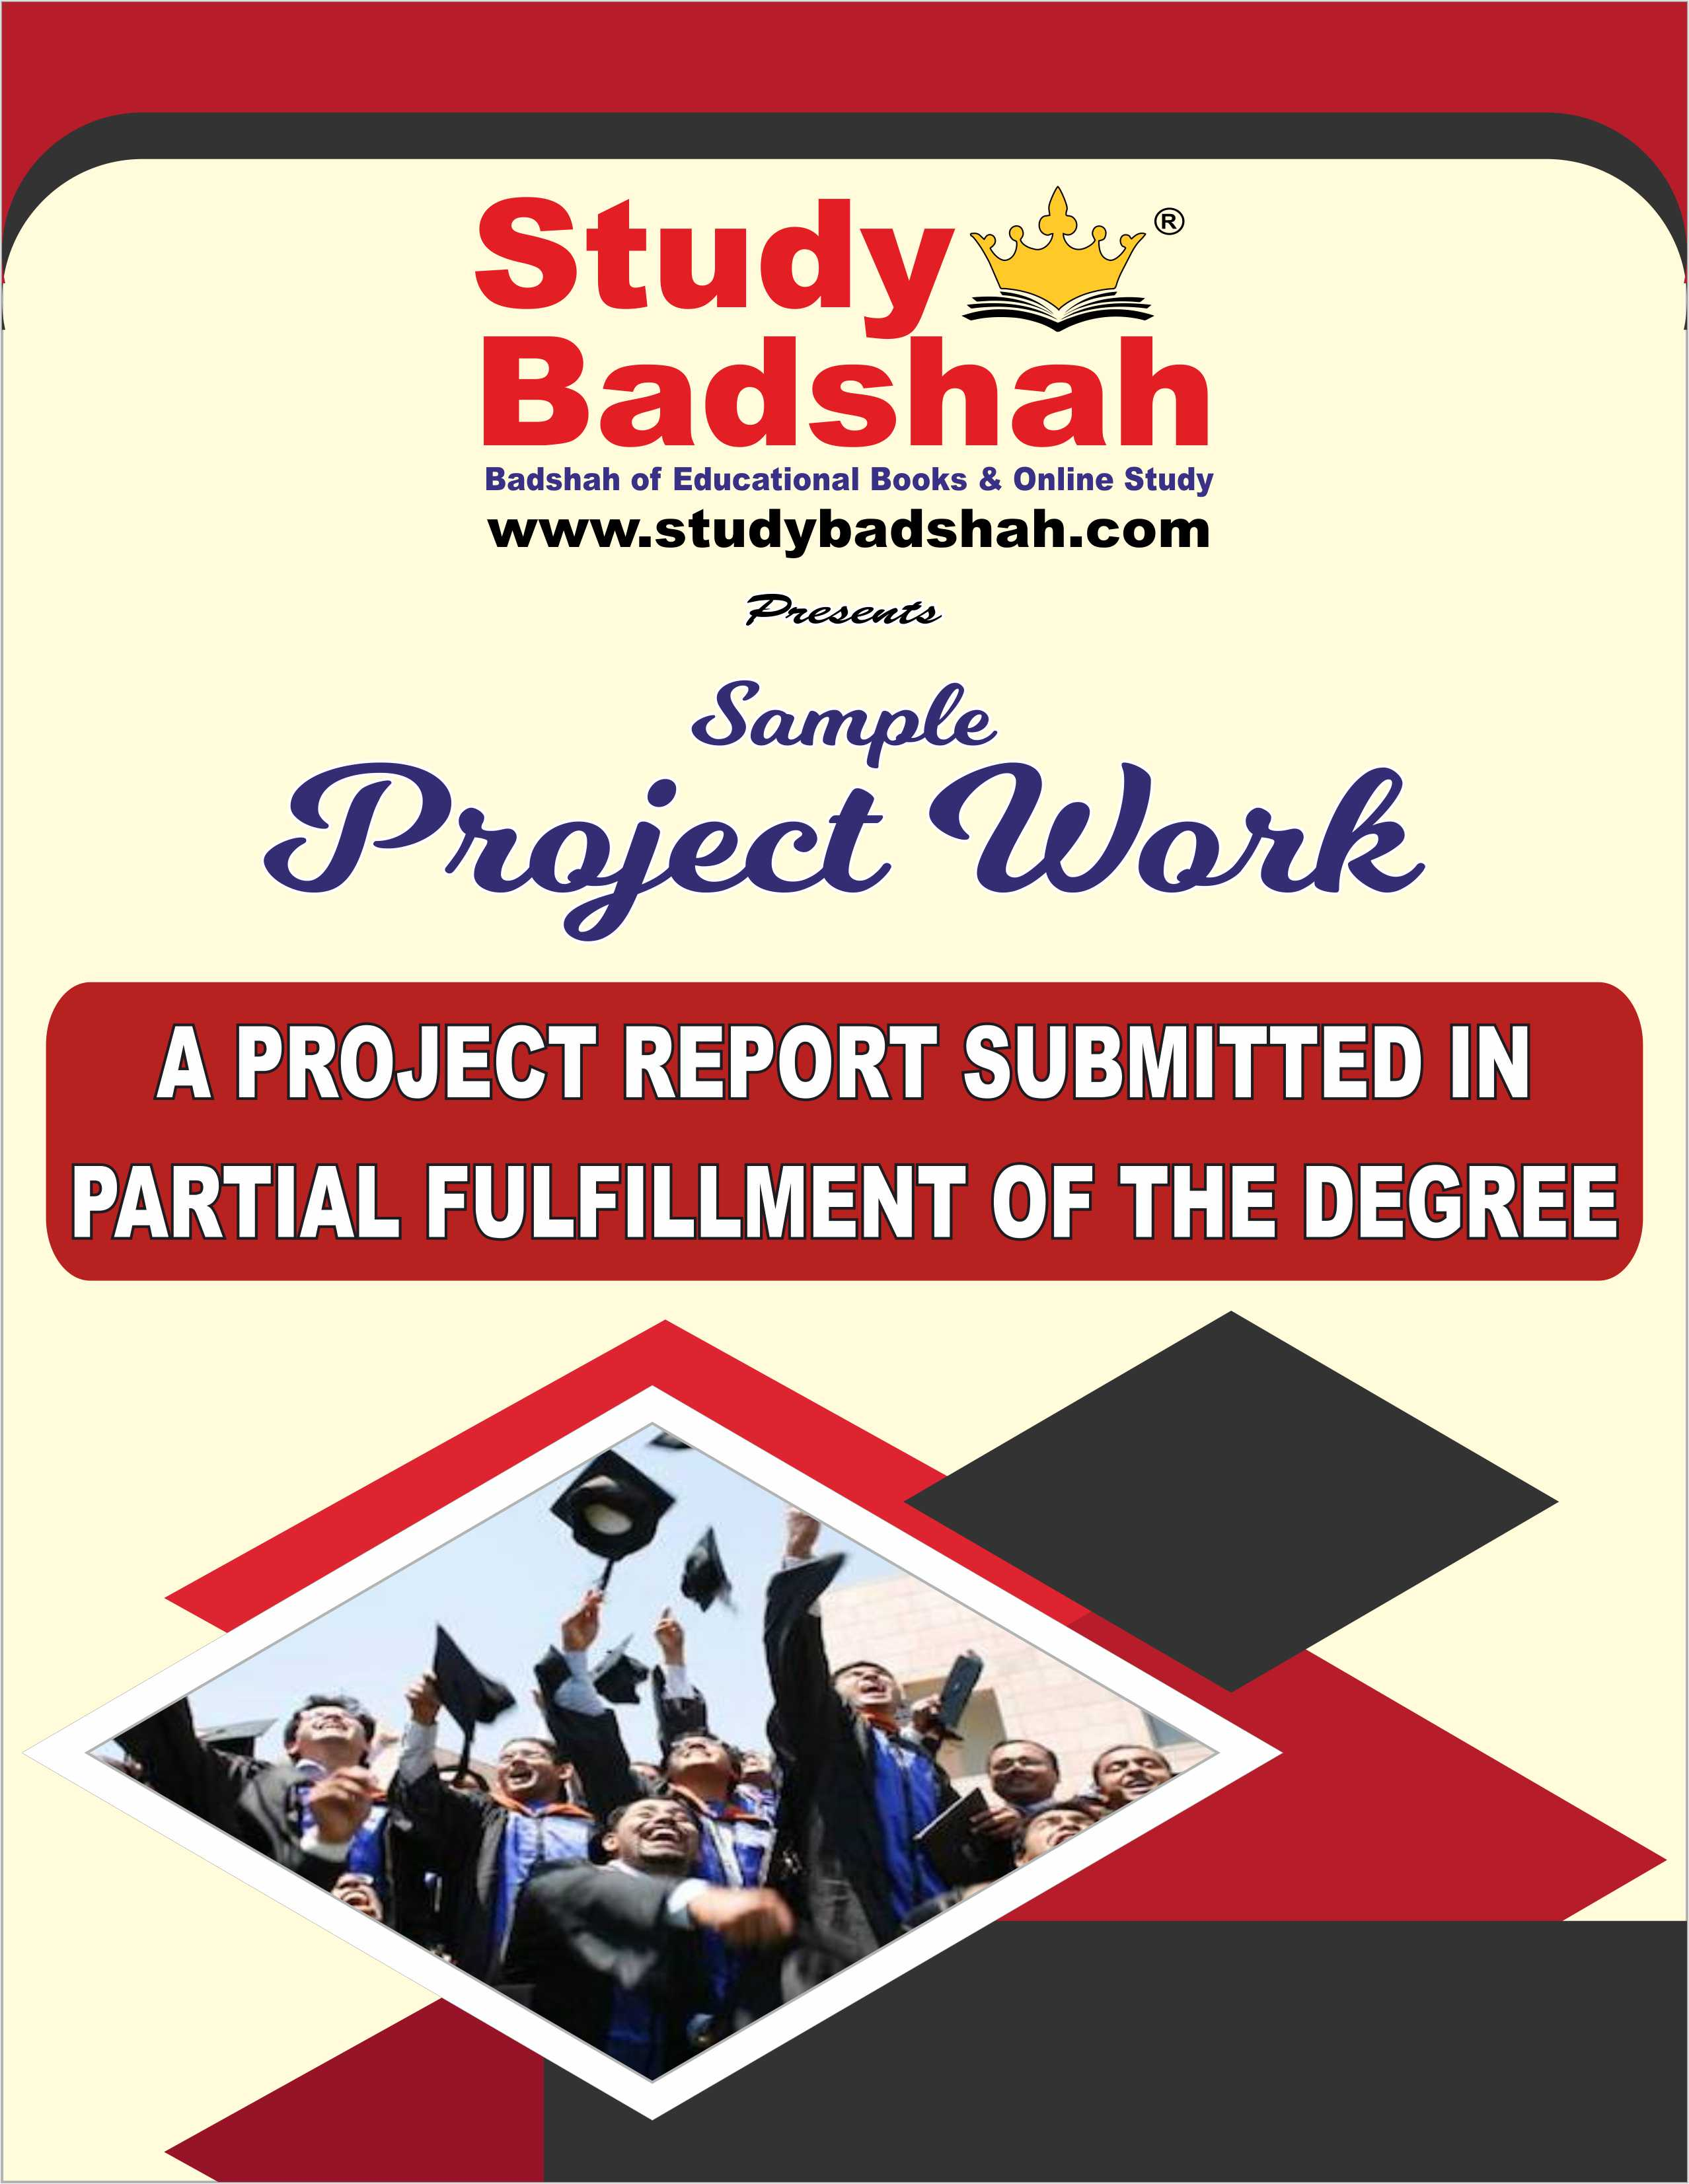 A PROJECT REPORT SUBMITTED IN PARTAIAL FULFILLMENT OF THE DEGREE